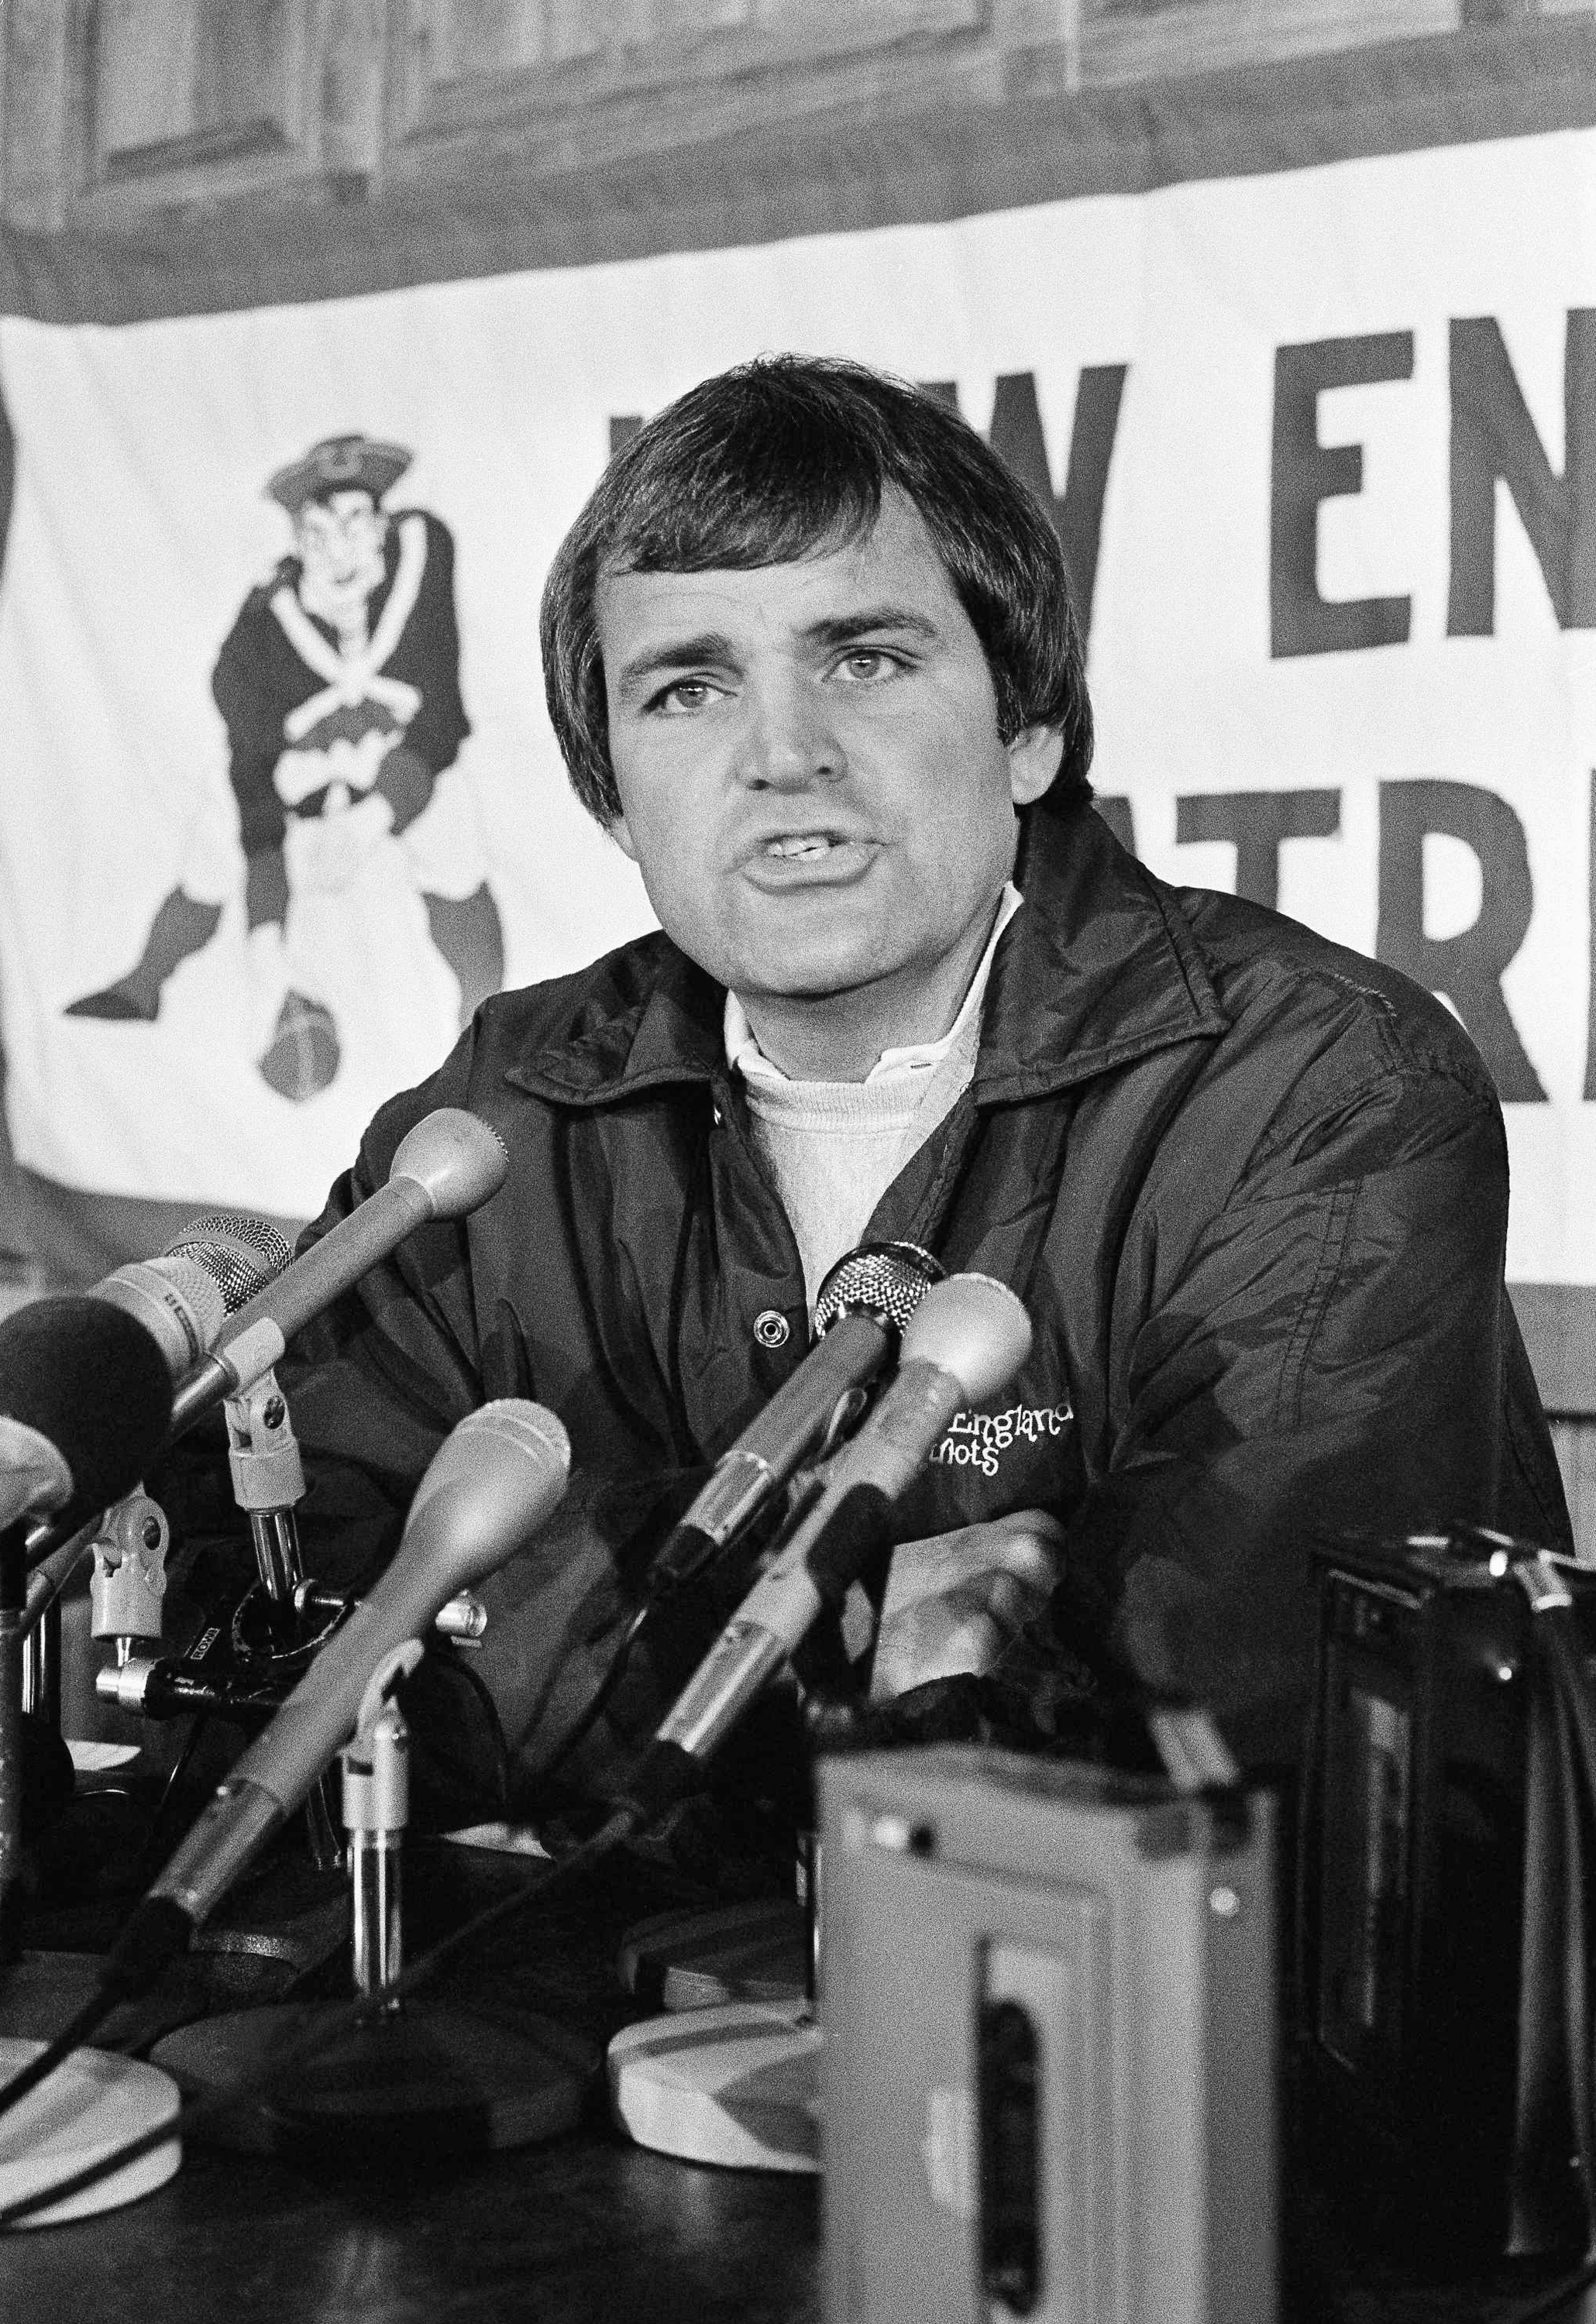 "FILE - In this Nov. 17, 1982, file photo, New England Patriots coach Ron Meyer talks with the media in Foxborough, Mass. From SMU's ""Pony Express"" to the NFL's infamous ""Snowplow Game,"" former college and professional football coach Ron Meyer was in the middle of some of the game's most controversial and colorful teams and moments in the 1980s. Meyer died Tuesday, Dec. 5, 2017, in Austin, Texas, at age 76.  (AP Photo/Paul Benoit, File)"